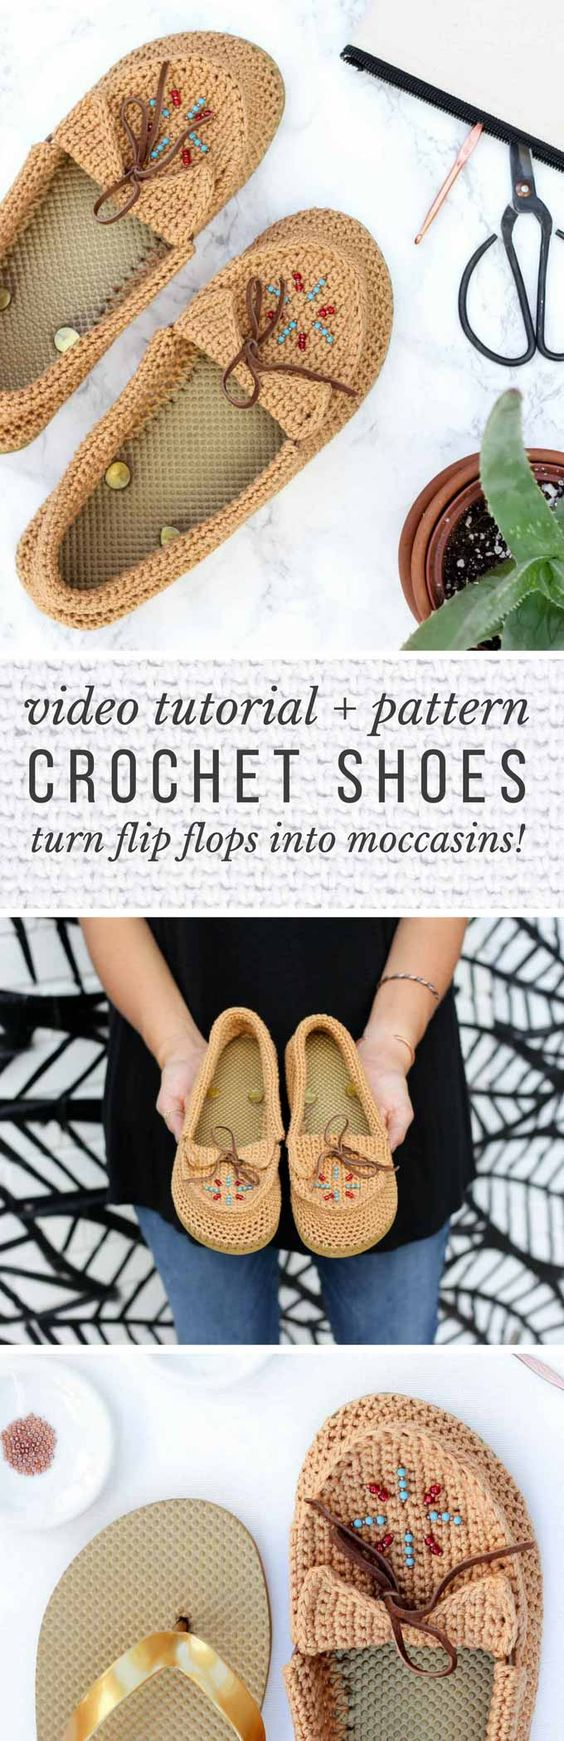 "Calling all boho fans! Learn how to crochet shoes with flip flop soles with this free crochet moccasin pattern and video tutorial! These modern crochet moccasins make super comfortable women's shoes or slippers and can be customized however you wish. Made from Lion Brand 24/7 Cotton in ""Camel"" color.:"